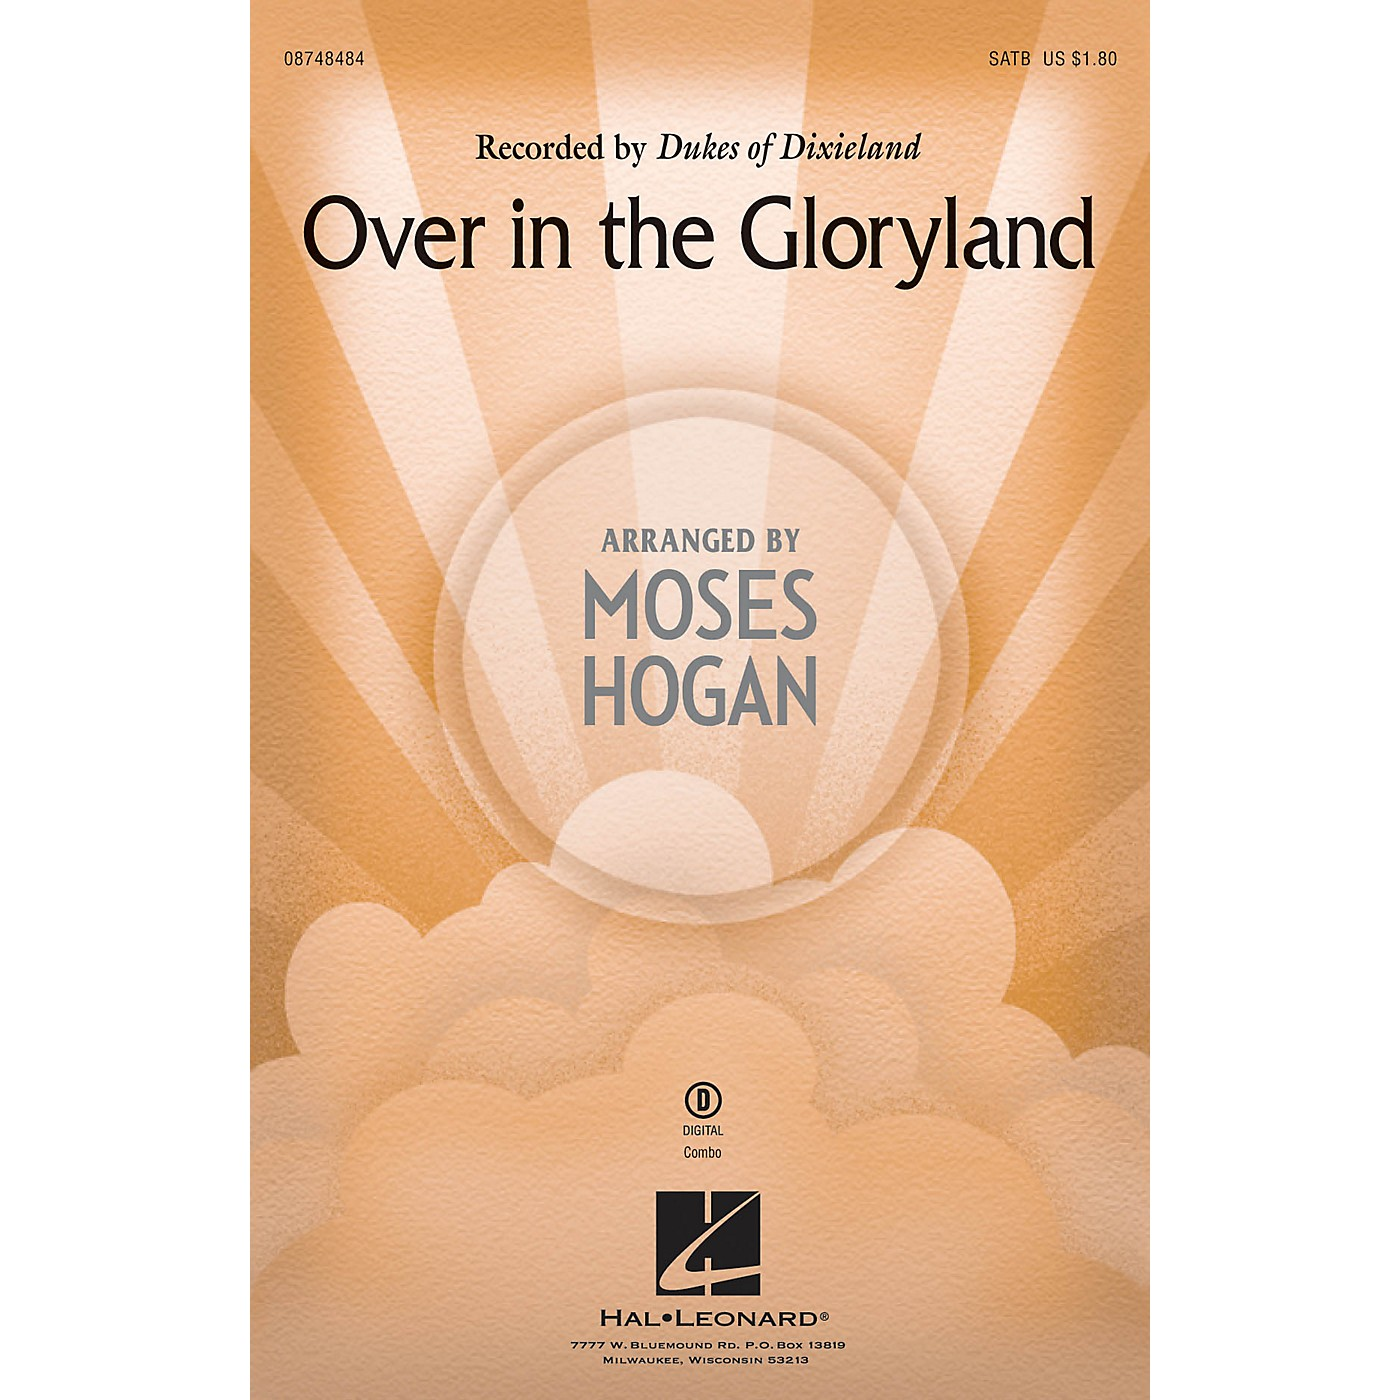 Hal Leonard Over in the Gloryland SATB by Dukes Of Dixieland arranged by Moses Hogan thumbnail